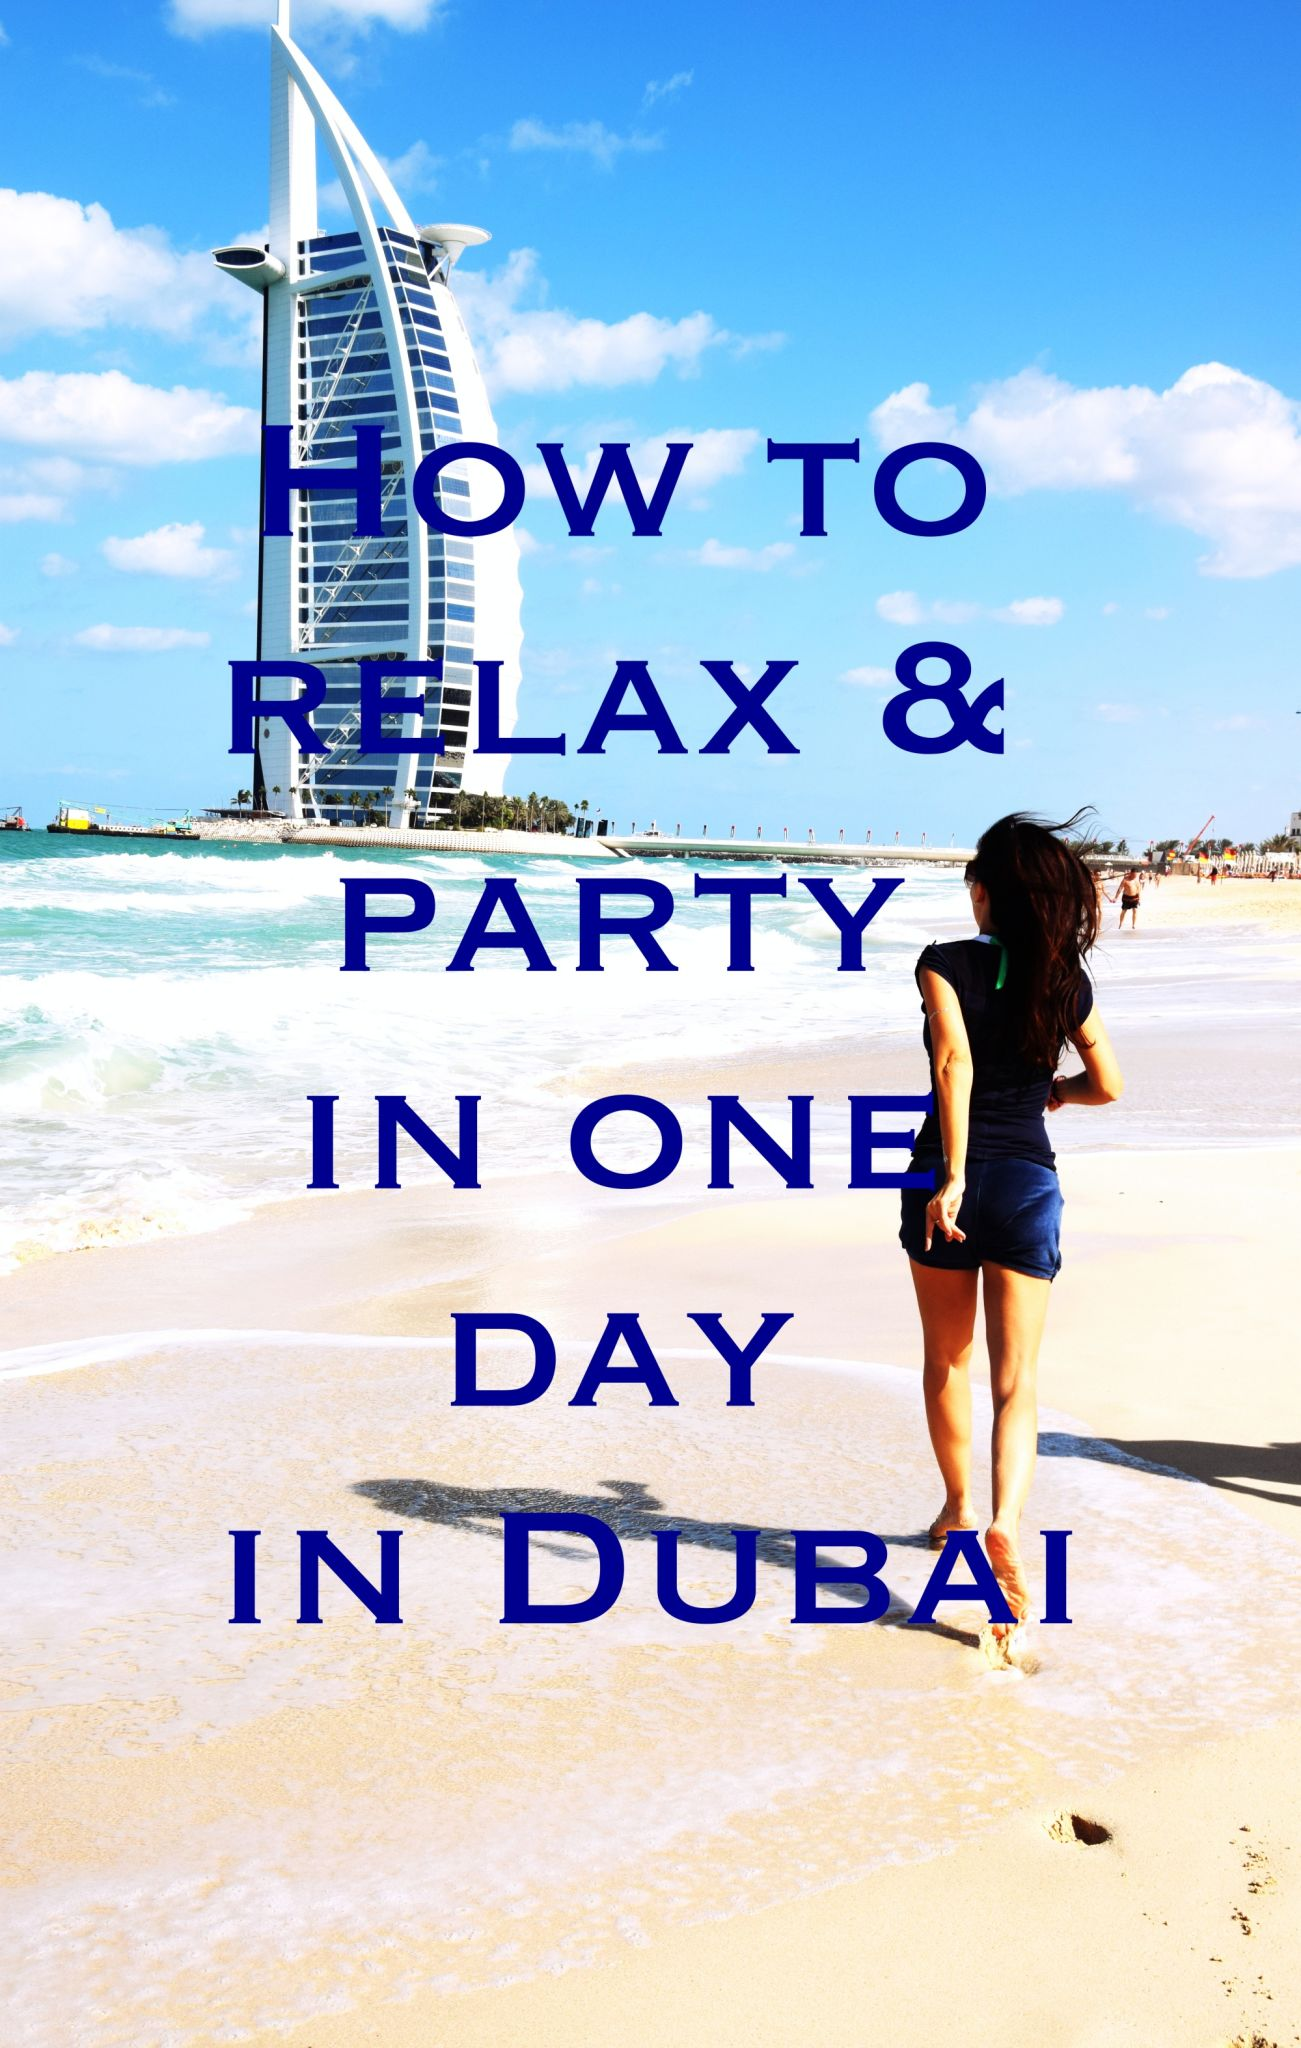 How to relax and party in one day in Dubai